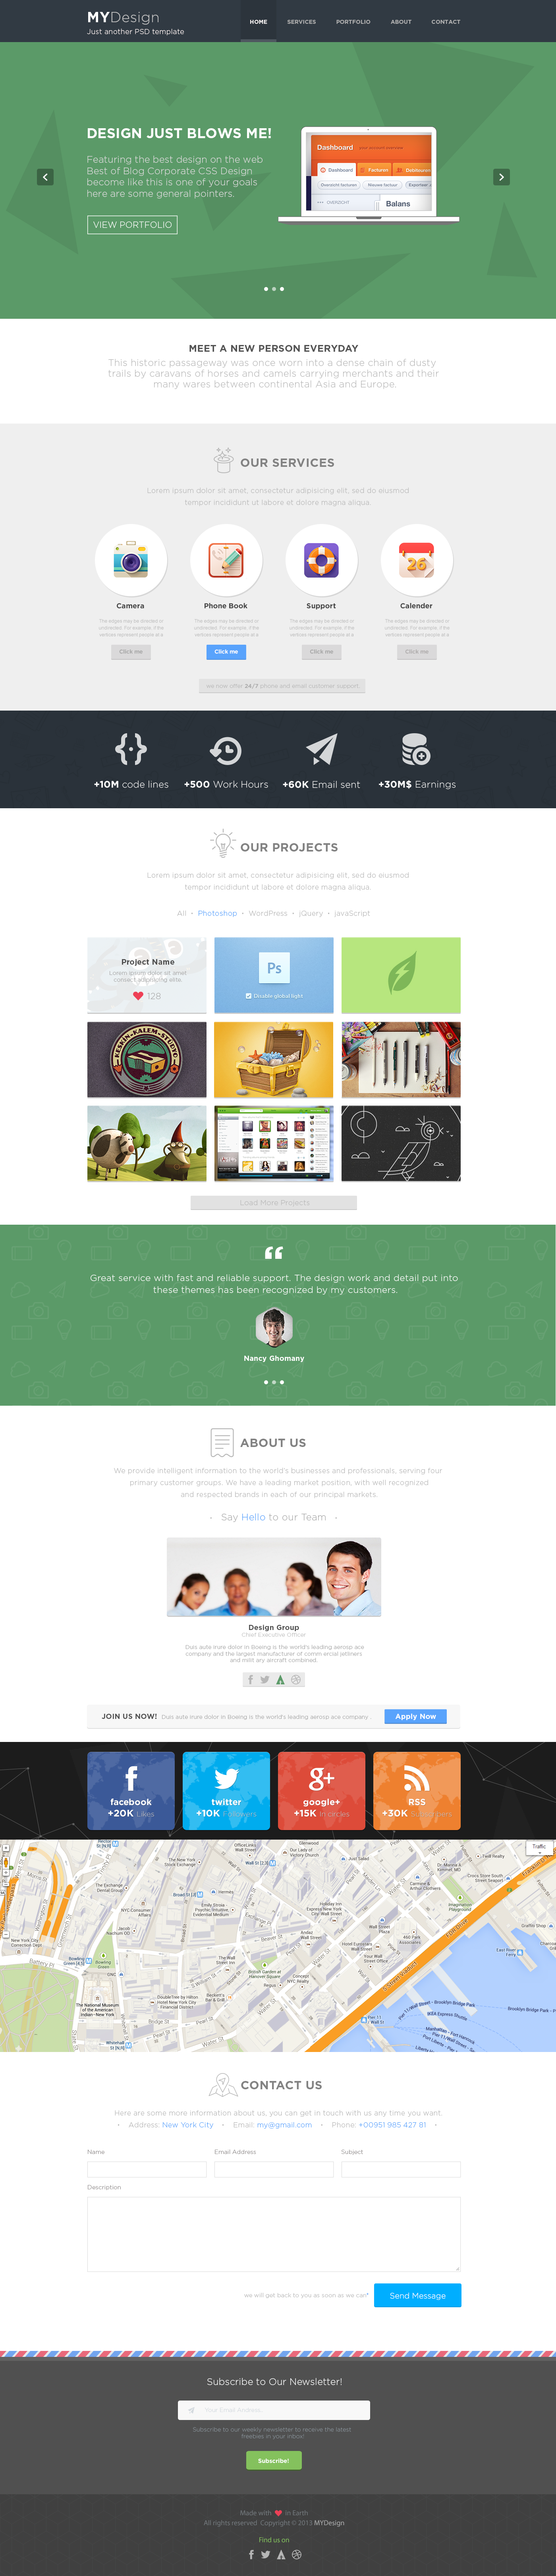 MYDesign - Onepage Multipurpose Flat HTML Template - 4